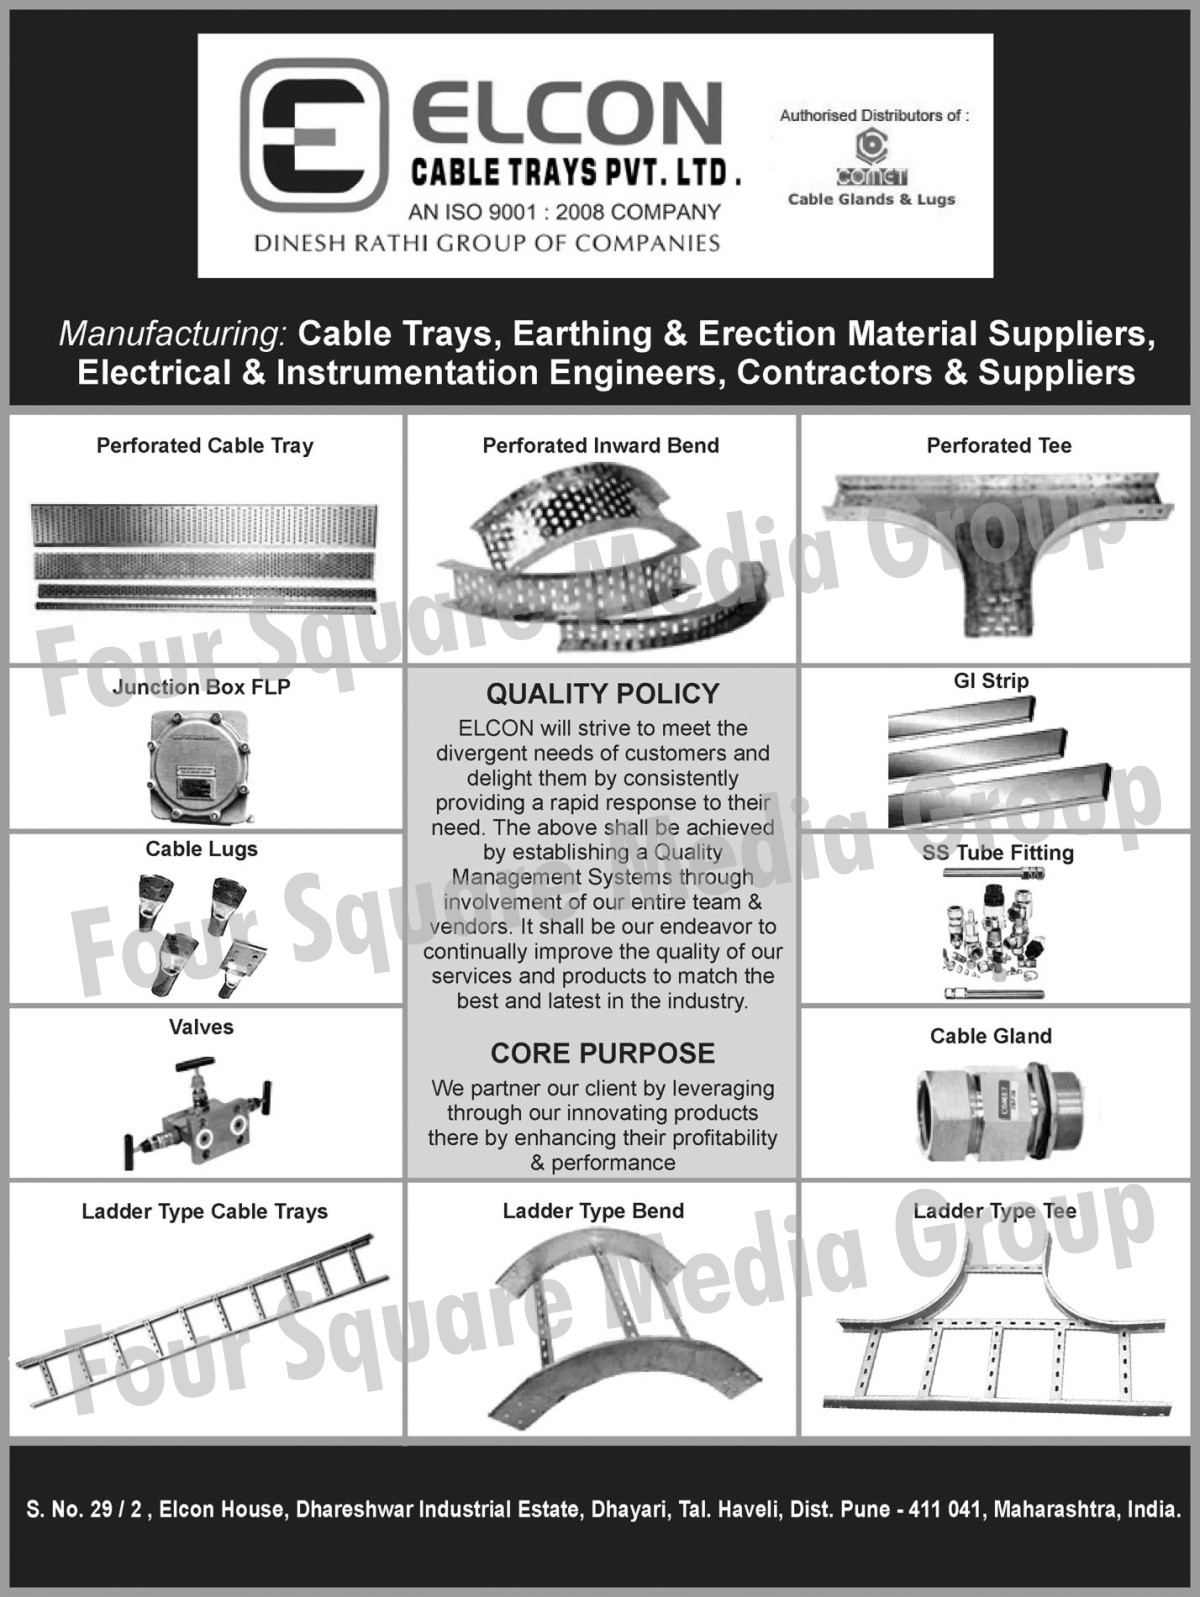 Cable Trays, Earthing Materials, Erection Materials, Electrical Engineers, Instrumentation Engineers, Perforated Cable Trays, Junction Box FLP, Cable Lugs, Ladder Type Cable Trays, Ladder Type Bands, Cable Gland, Ladder Type Tee, Stainless Steel Tube Fittings, GI Strips, Perforated Tee, Perforated Inward Bonds, Ladder Cable Trays